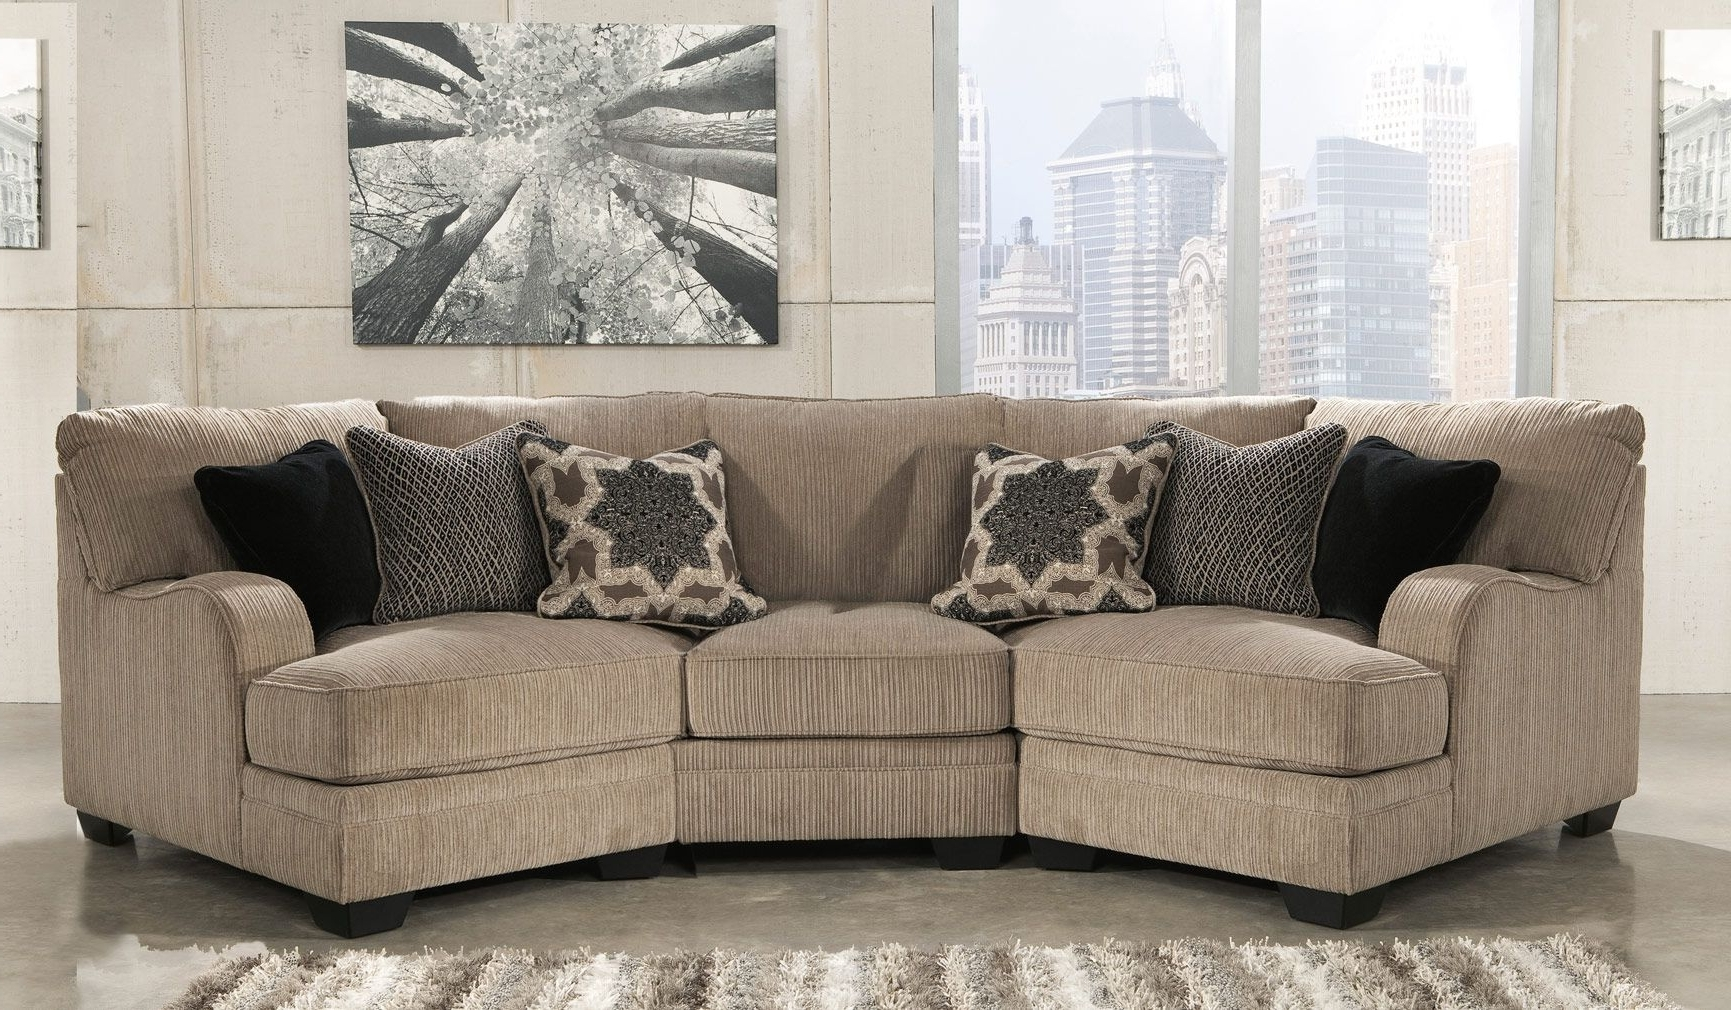 Most Recent Eau Claire Wi Sectional Sofas With Regard To Signature Designashley  (View 13 of 15)